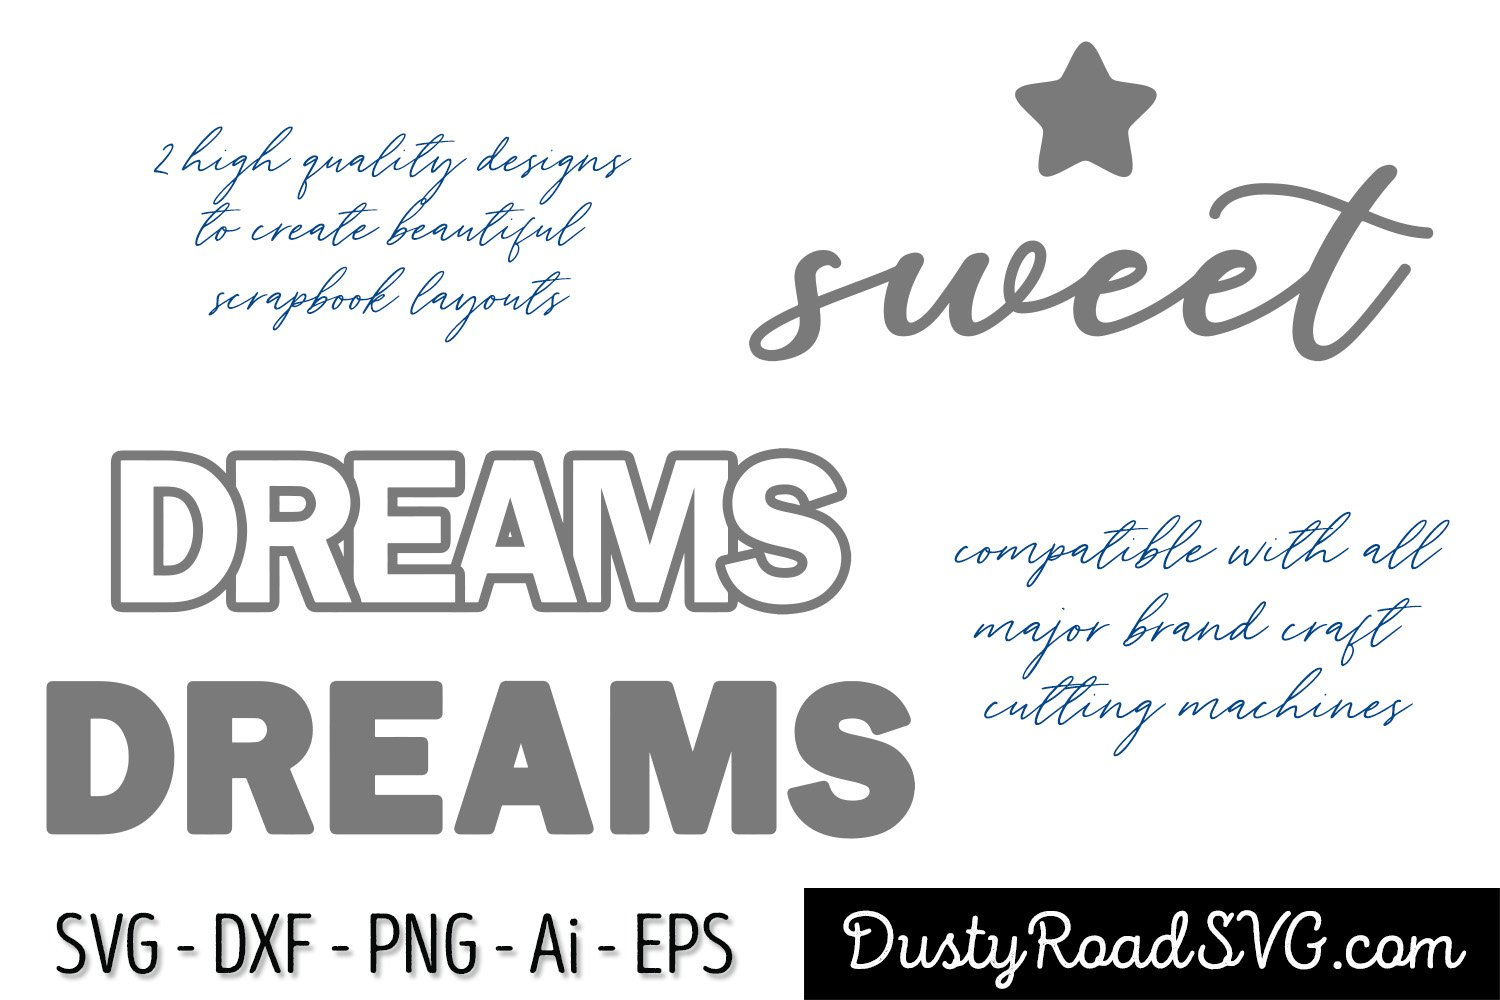 sweet dreams - Scrapbook - cut file - svg png eps dxf example image 2